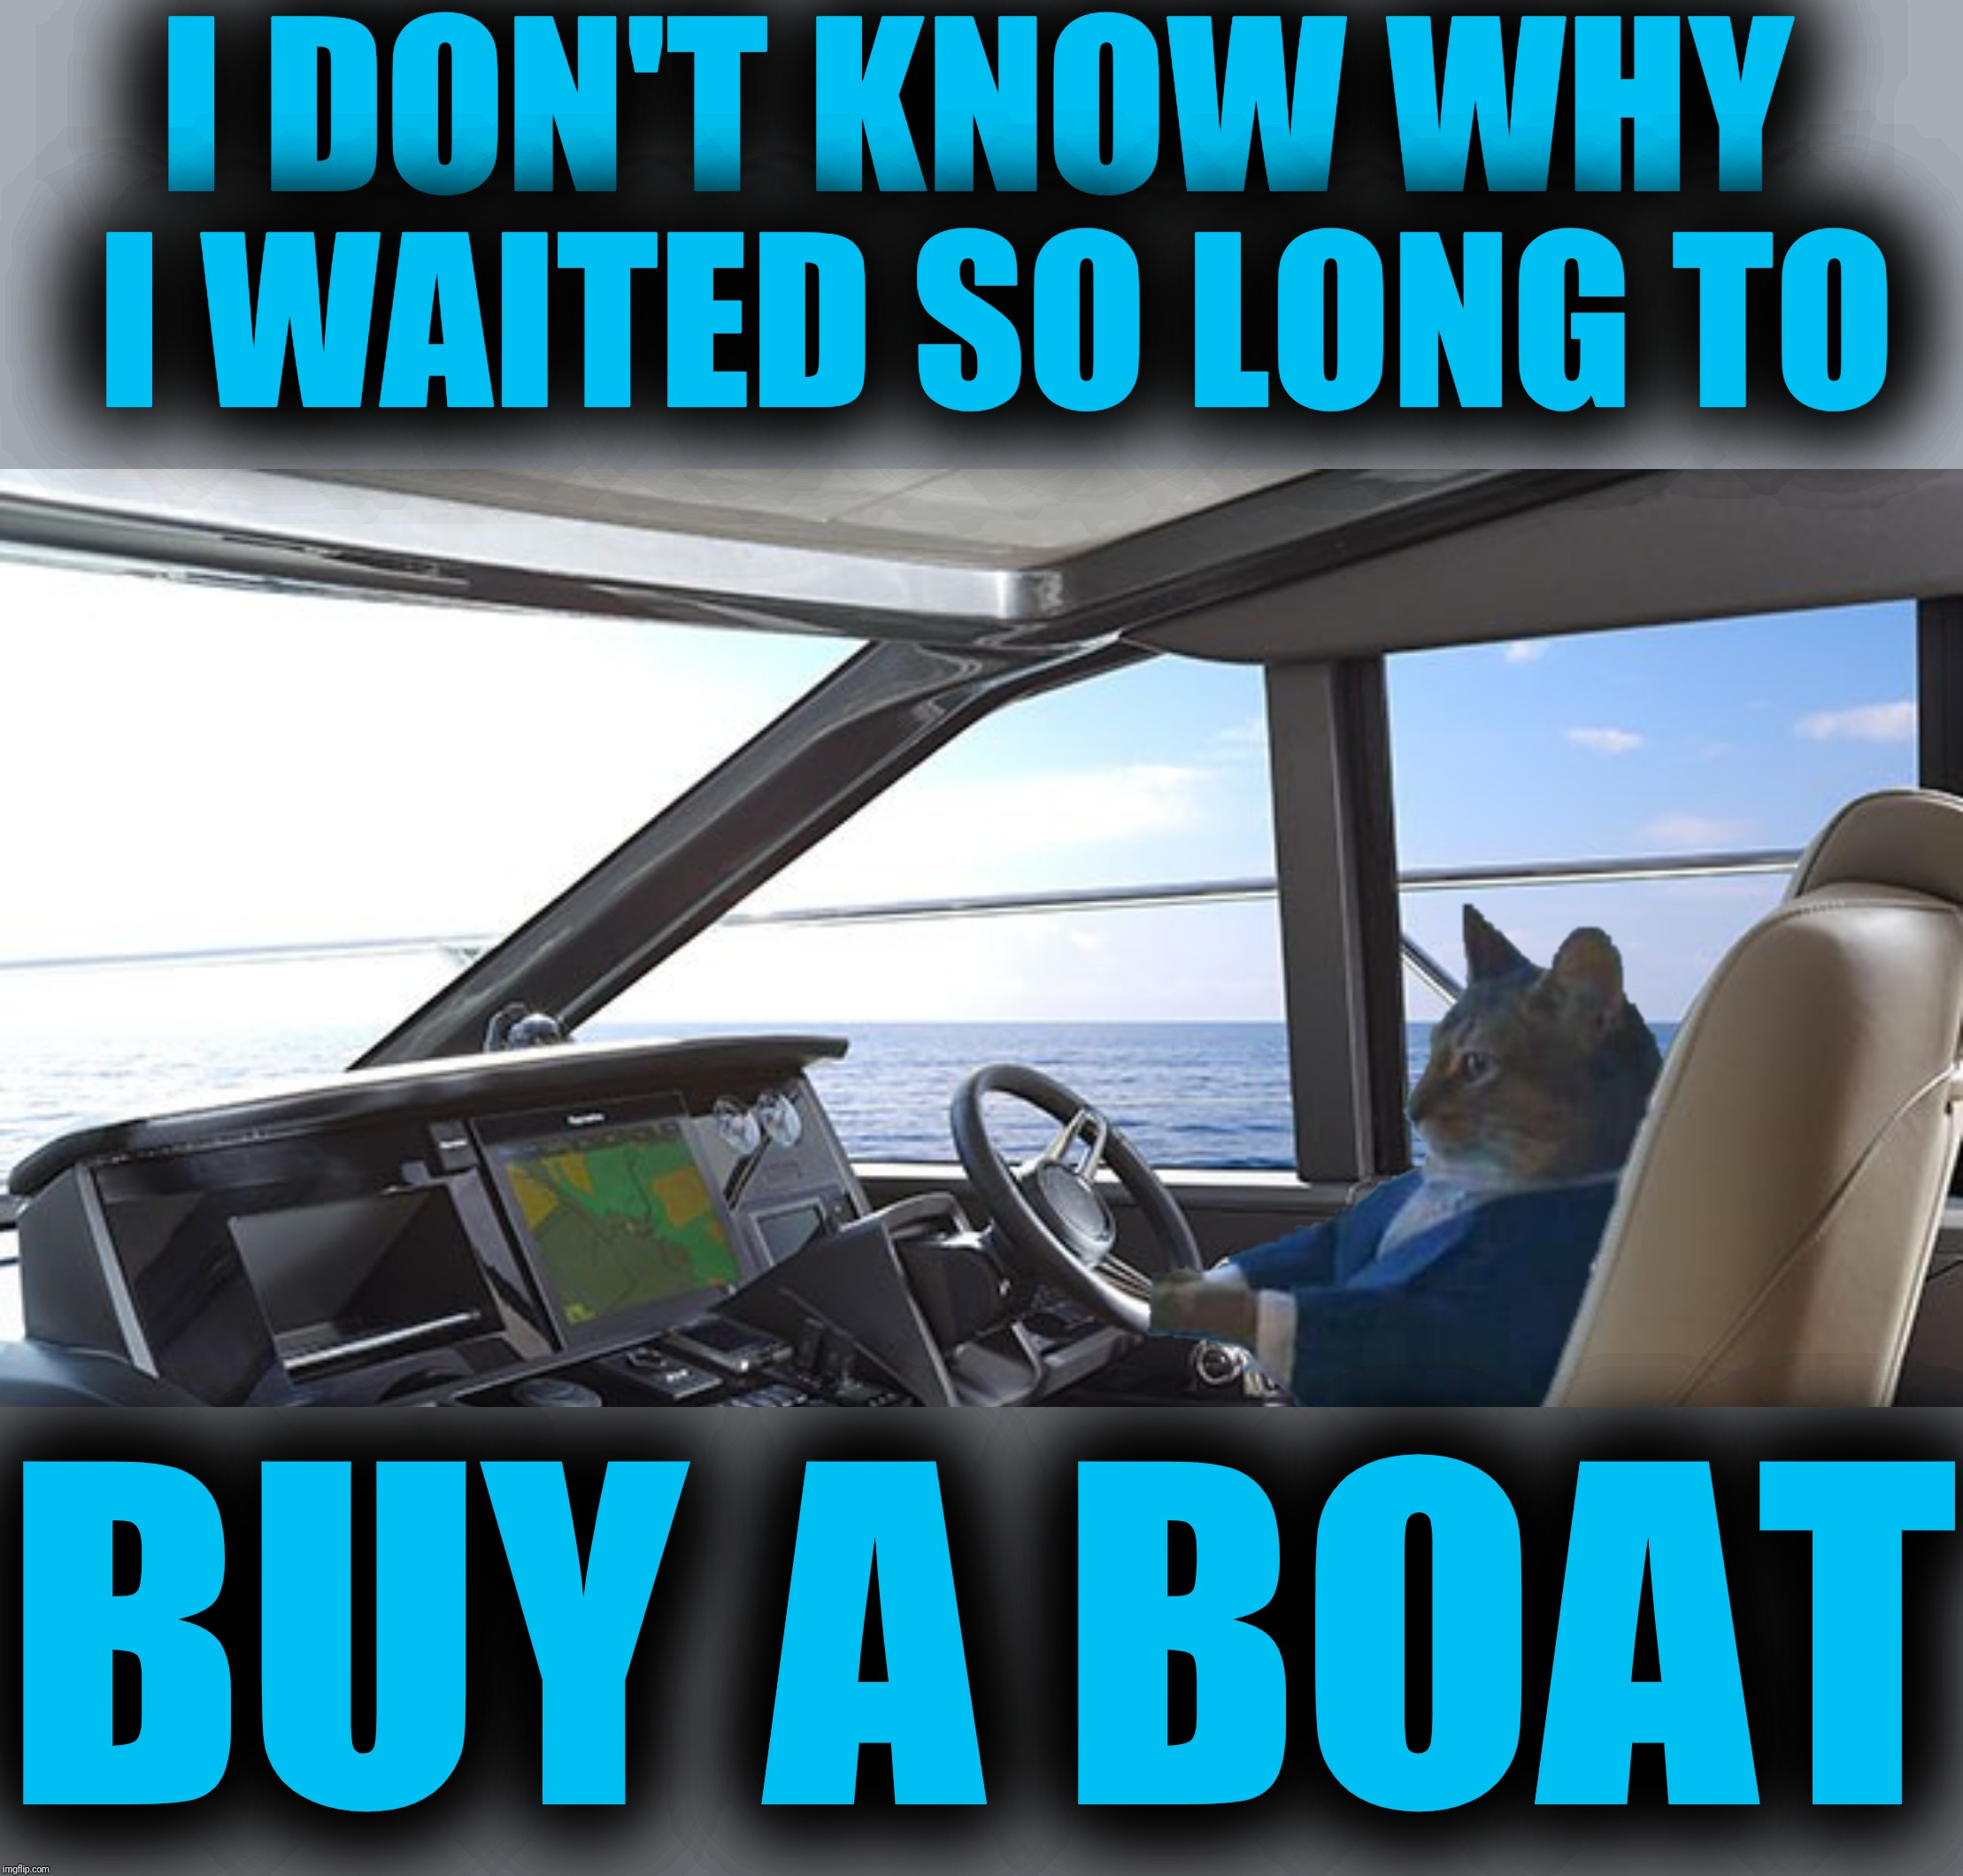 It's about time, he's been talking about it for years |  I DON'T KNOW WHY I WAITED SO LONG TO; BUY A BOAT | image tagged in i should buy a boat cat,it's about time,boating | made w/ Imgflip meme maker